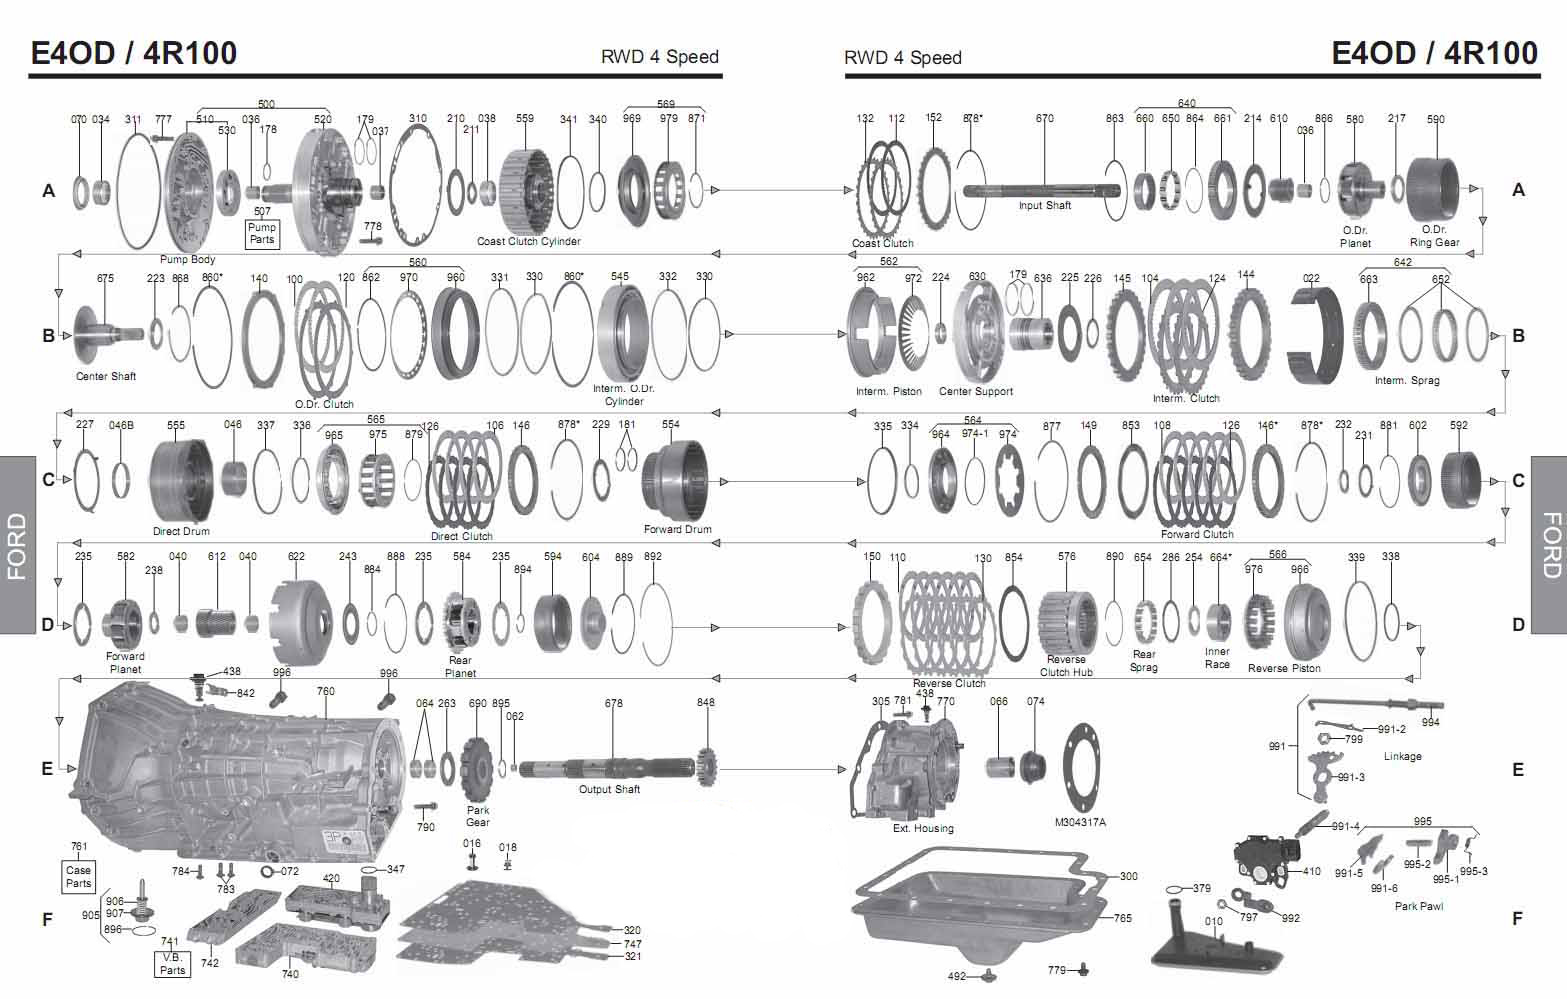 Transmission repair manuals 4R100 (E4OD) | Instructions for